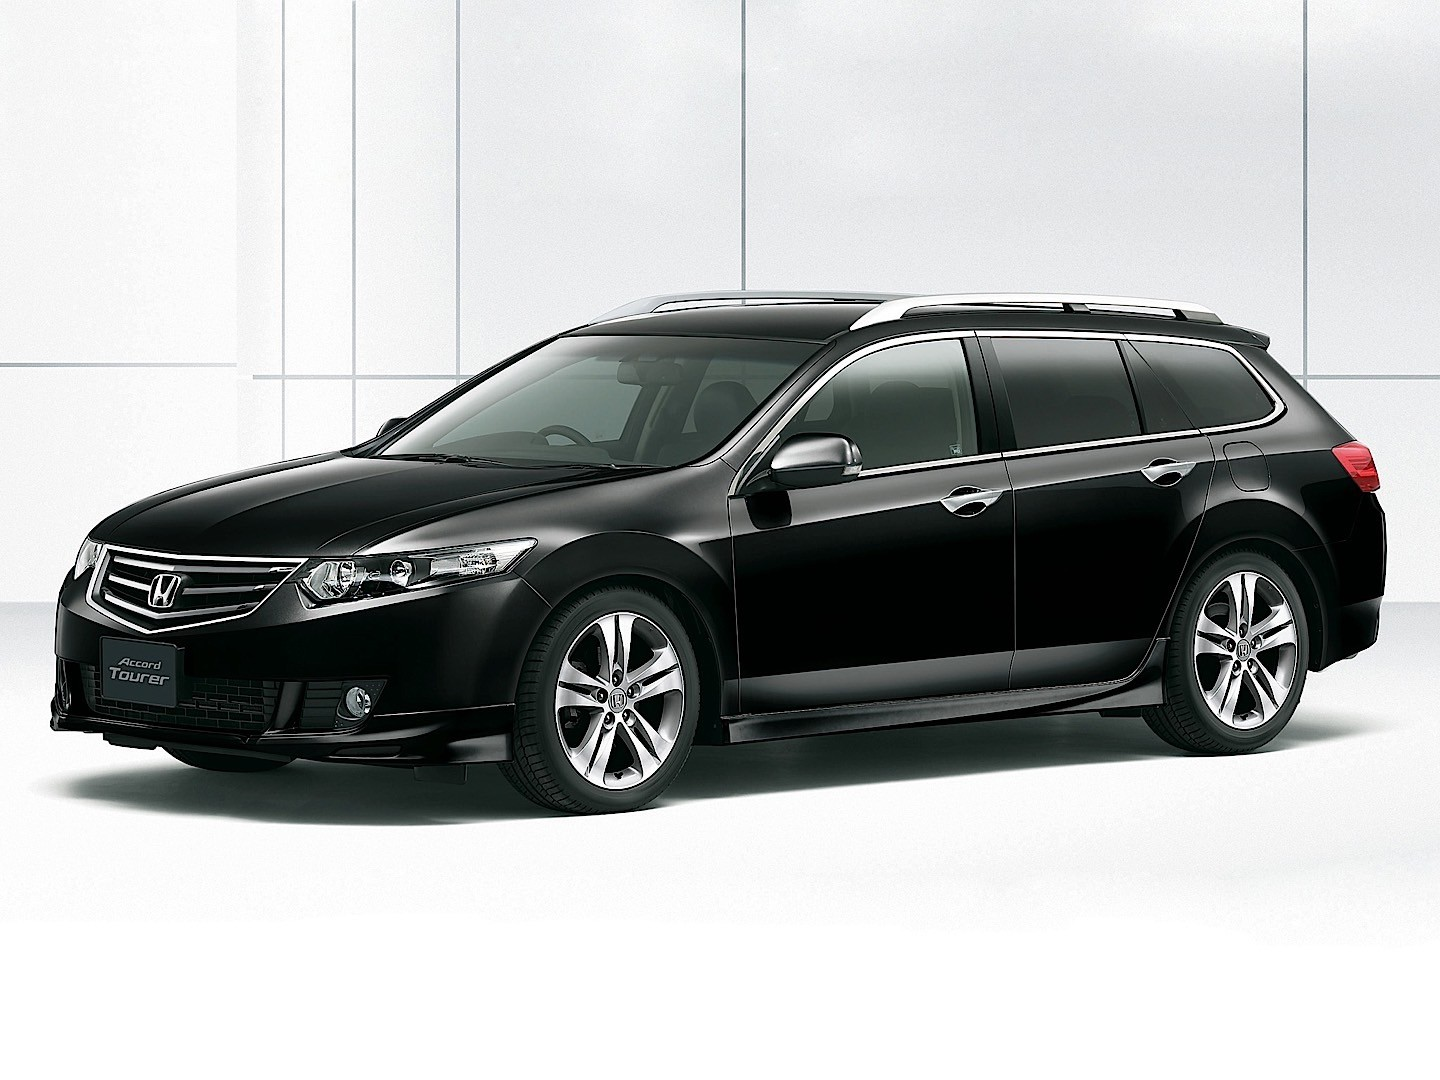 honda accord tourer specs 2008 2009 2010 2011. Black Bedroom Furniture Sets. Home Design Ideas